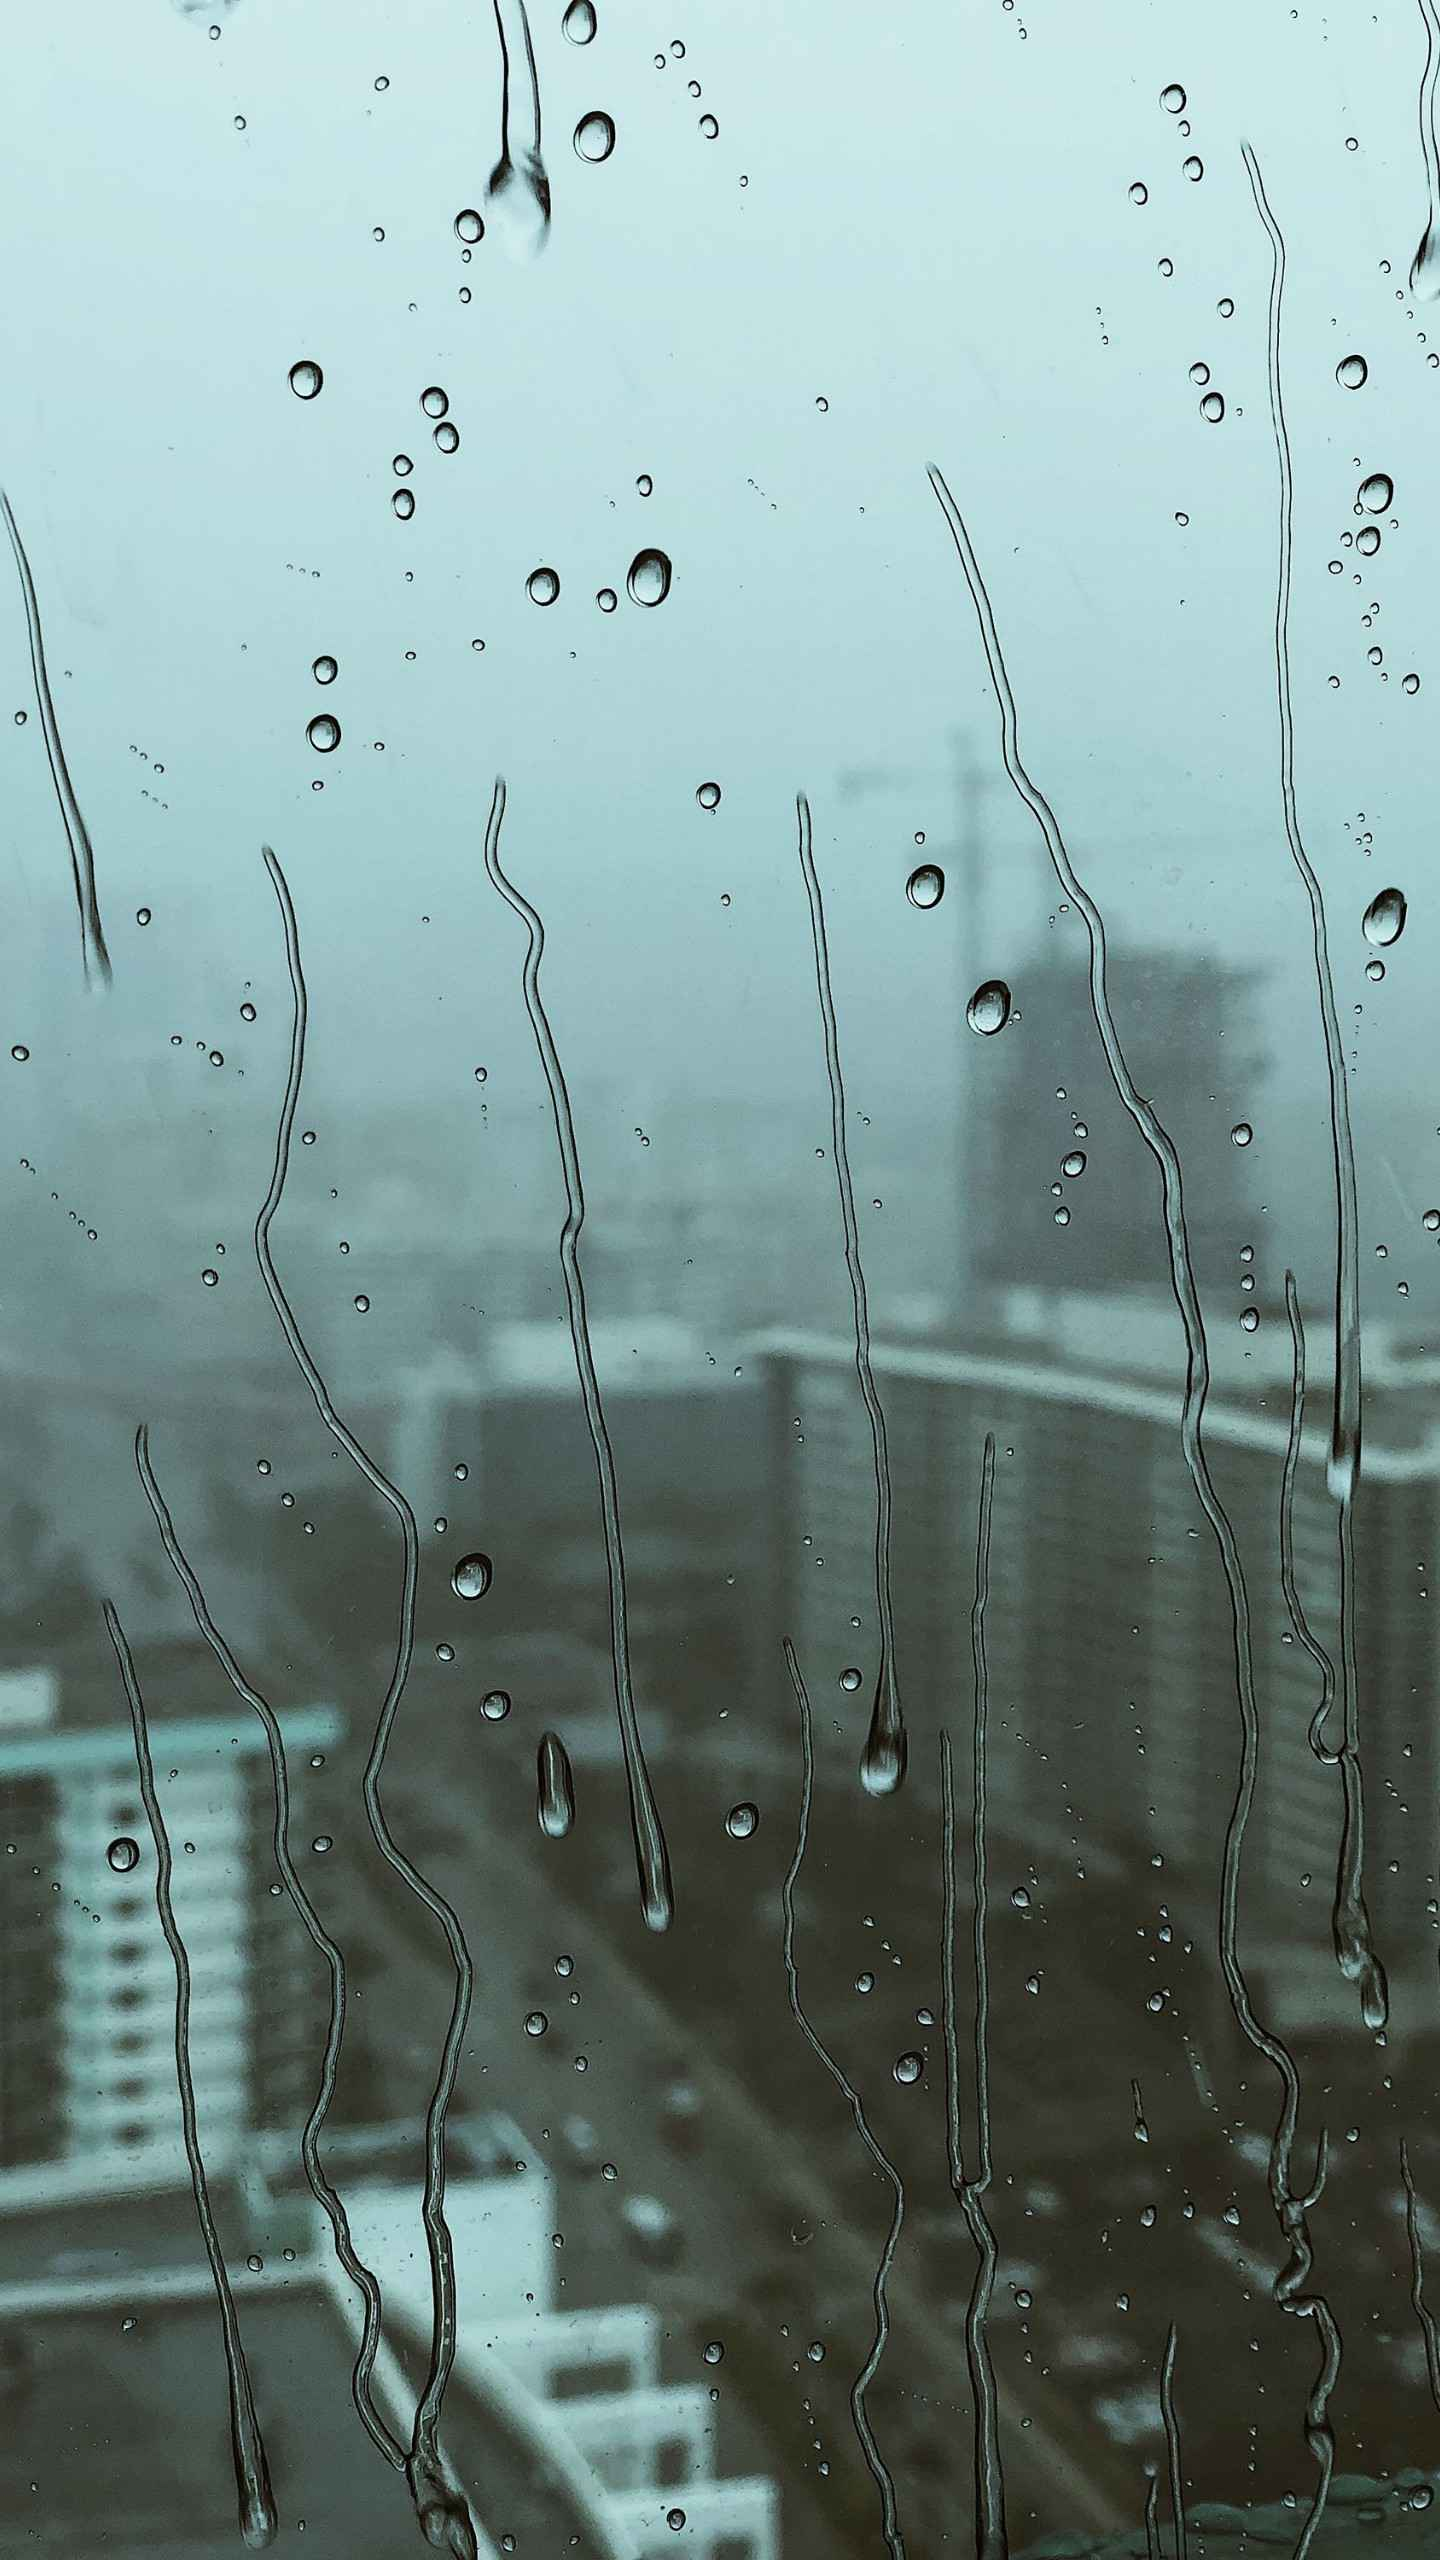 Waterdrops on glass iPhone Wallpaper